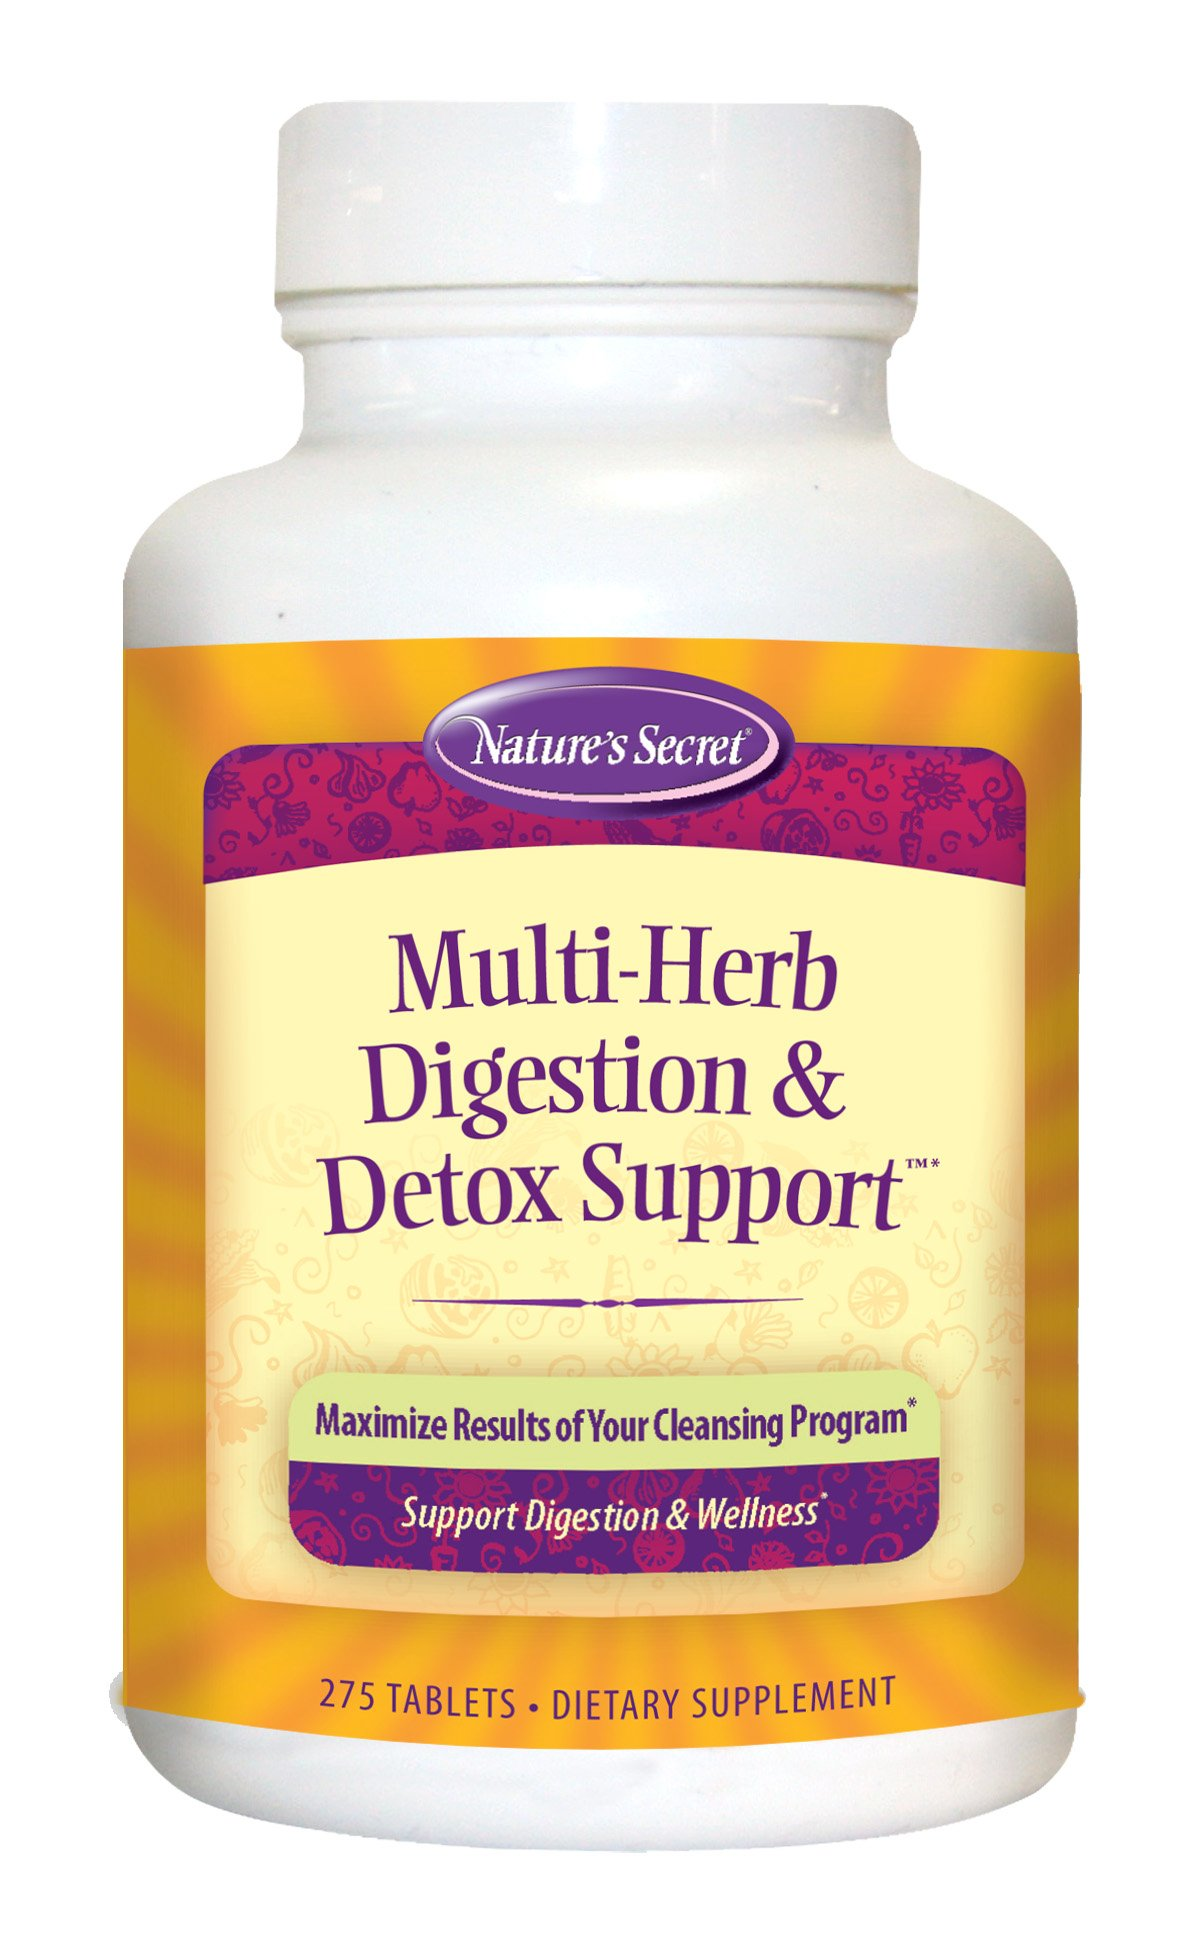 Nature's Secret Multi Herb Digestion and Detox Support Economy Diet Supplement, 275 Count